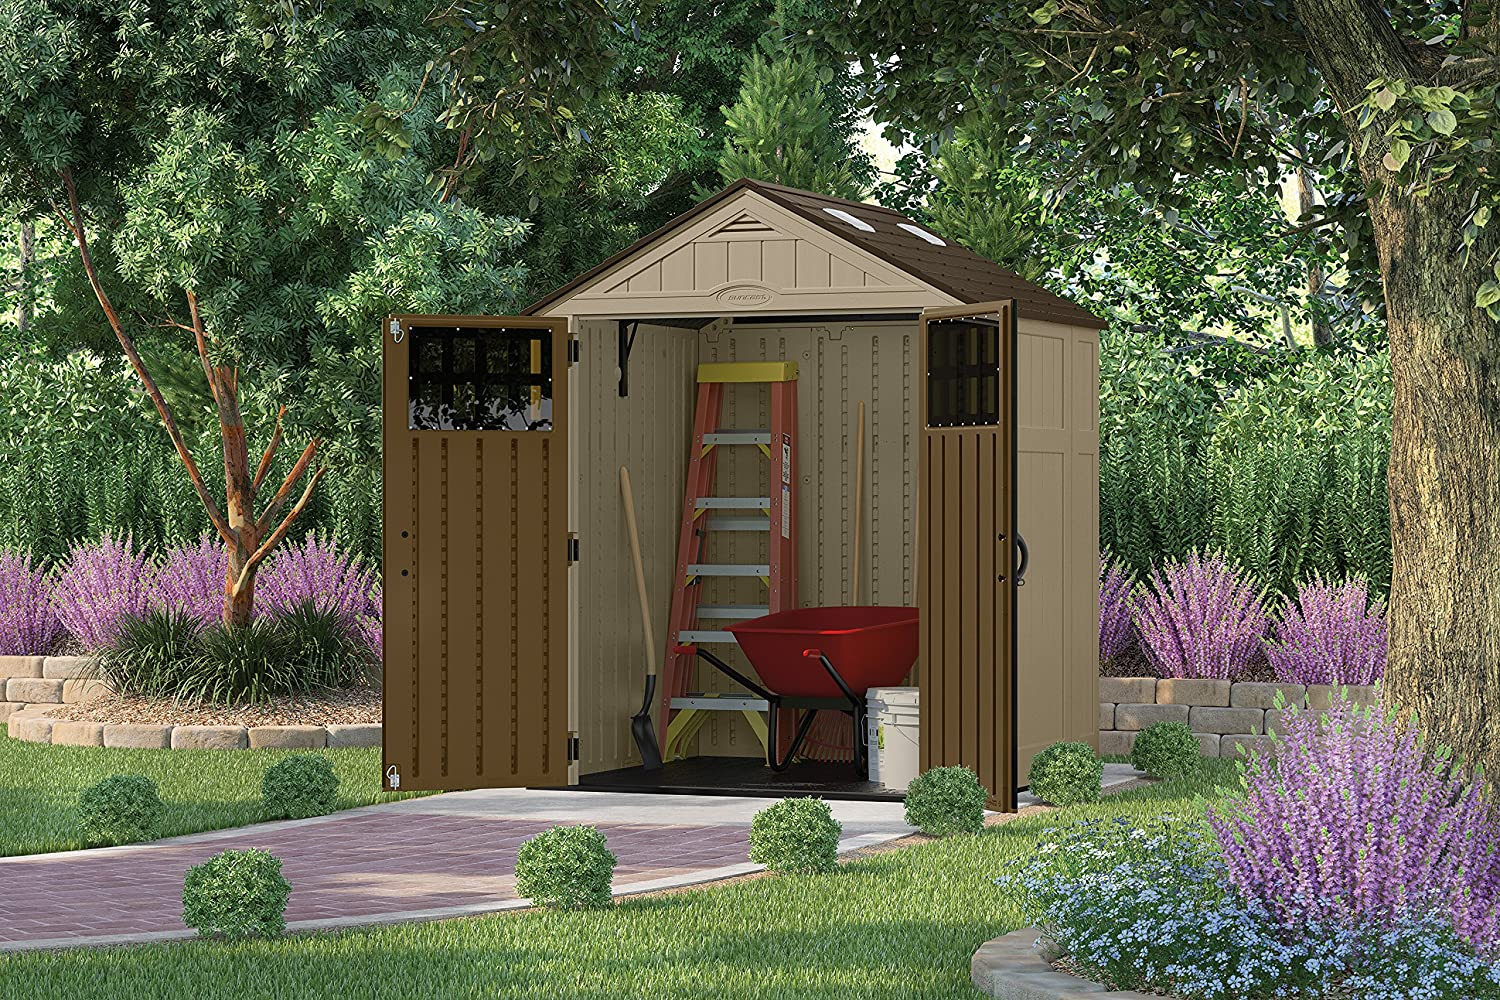 amazoncom suncast bms6510d 6 feet by 5 feet blow molded storage shed garden outdoor - Garden Sheds 6 X 3